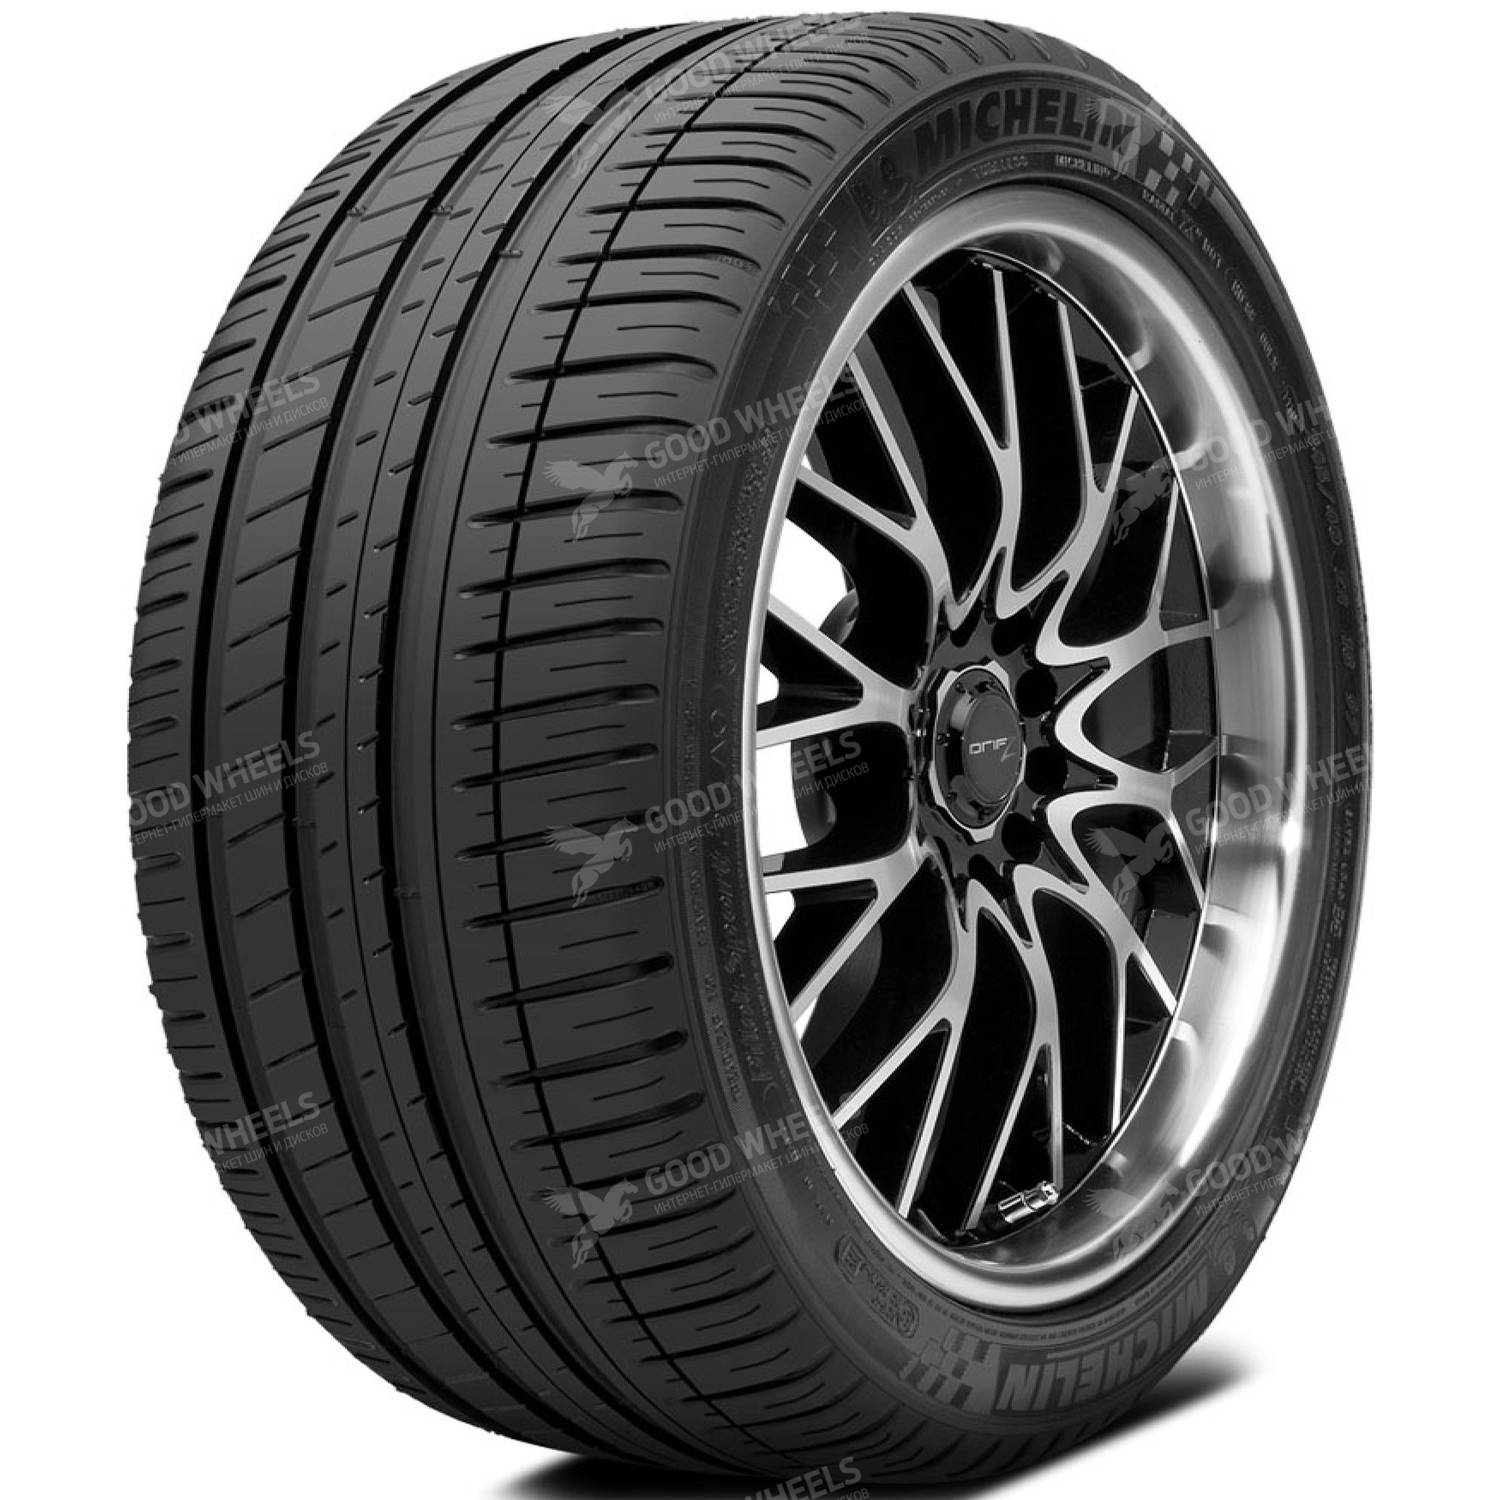 Michelin Pilot Sport 3 (PS3) 245/40 R19 98Y